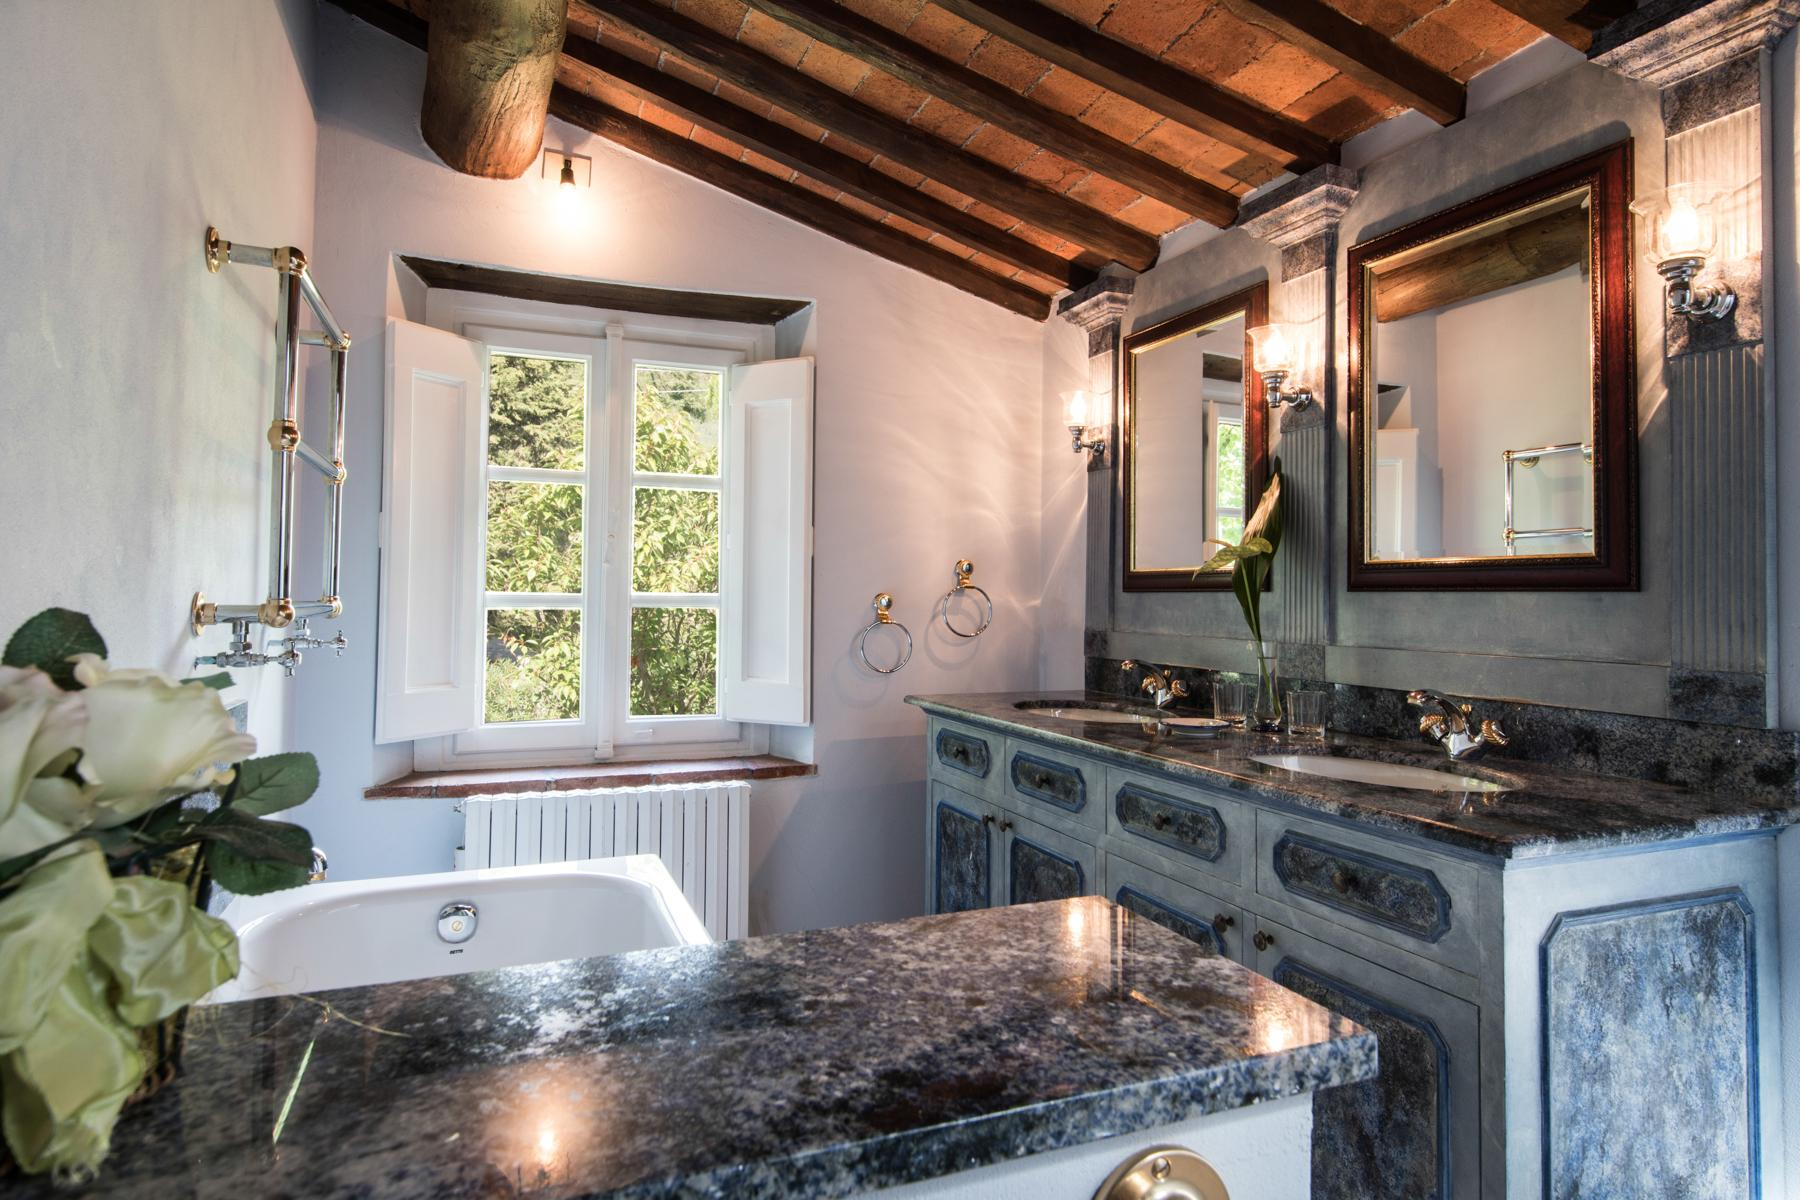 Marvelous villa in the countryside of Lucca - 23